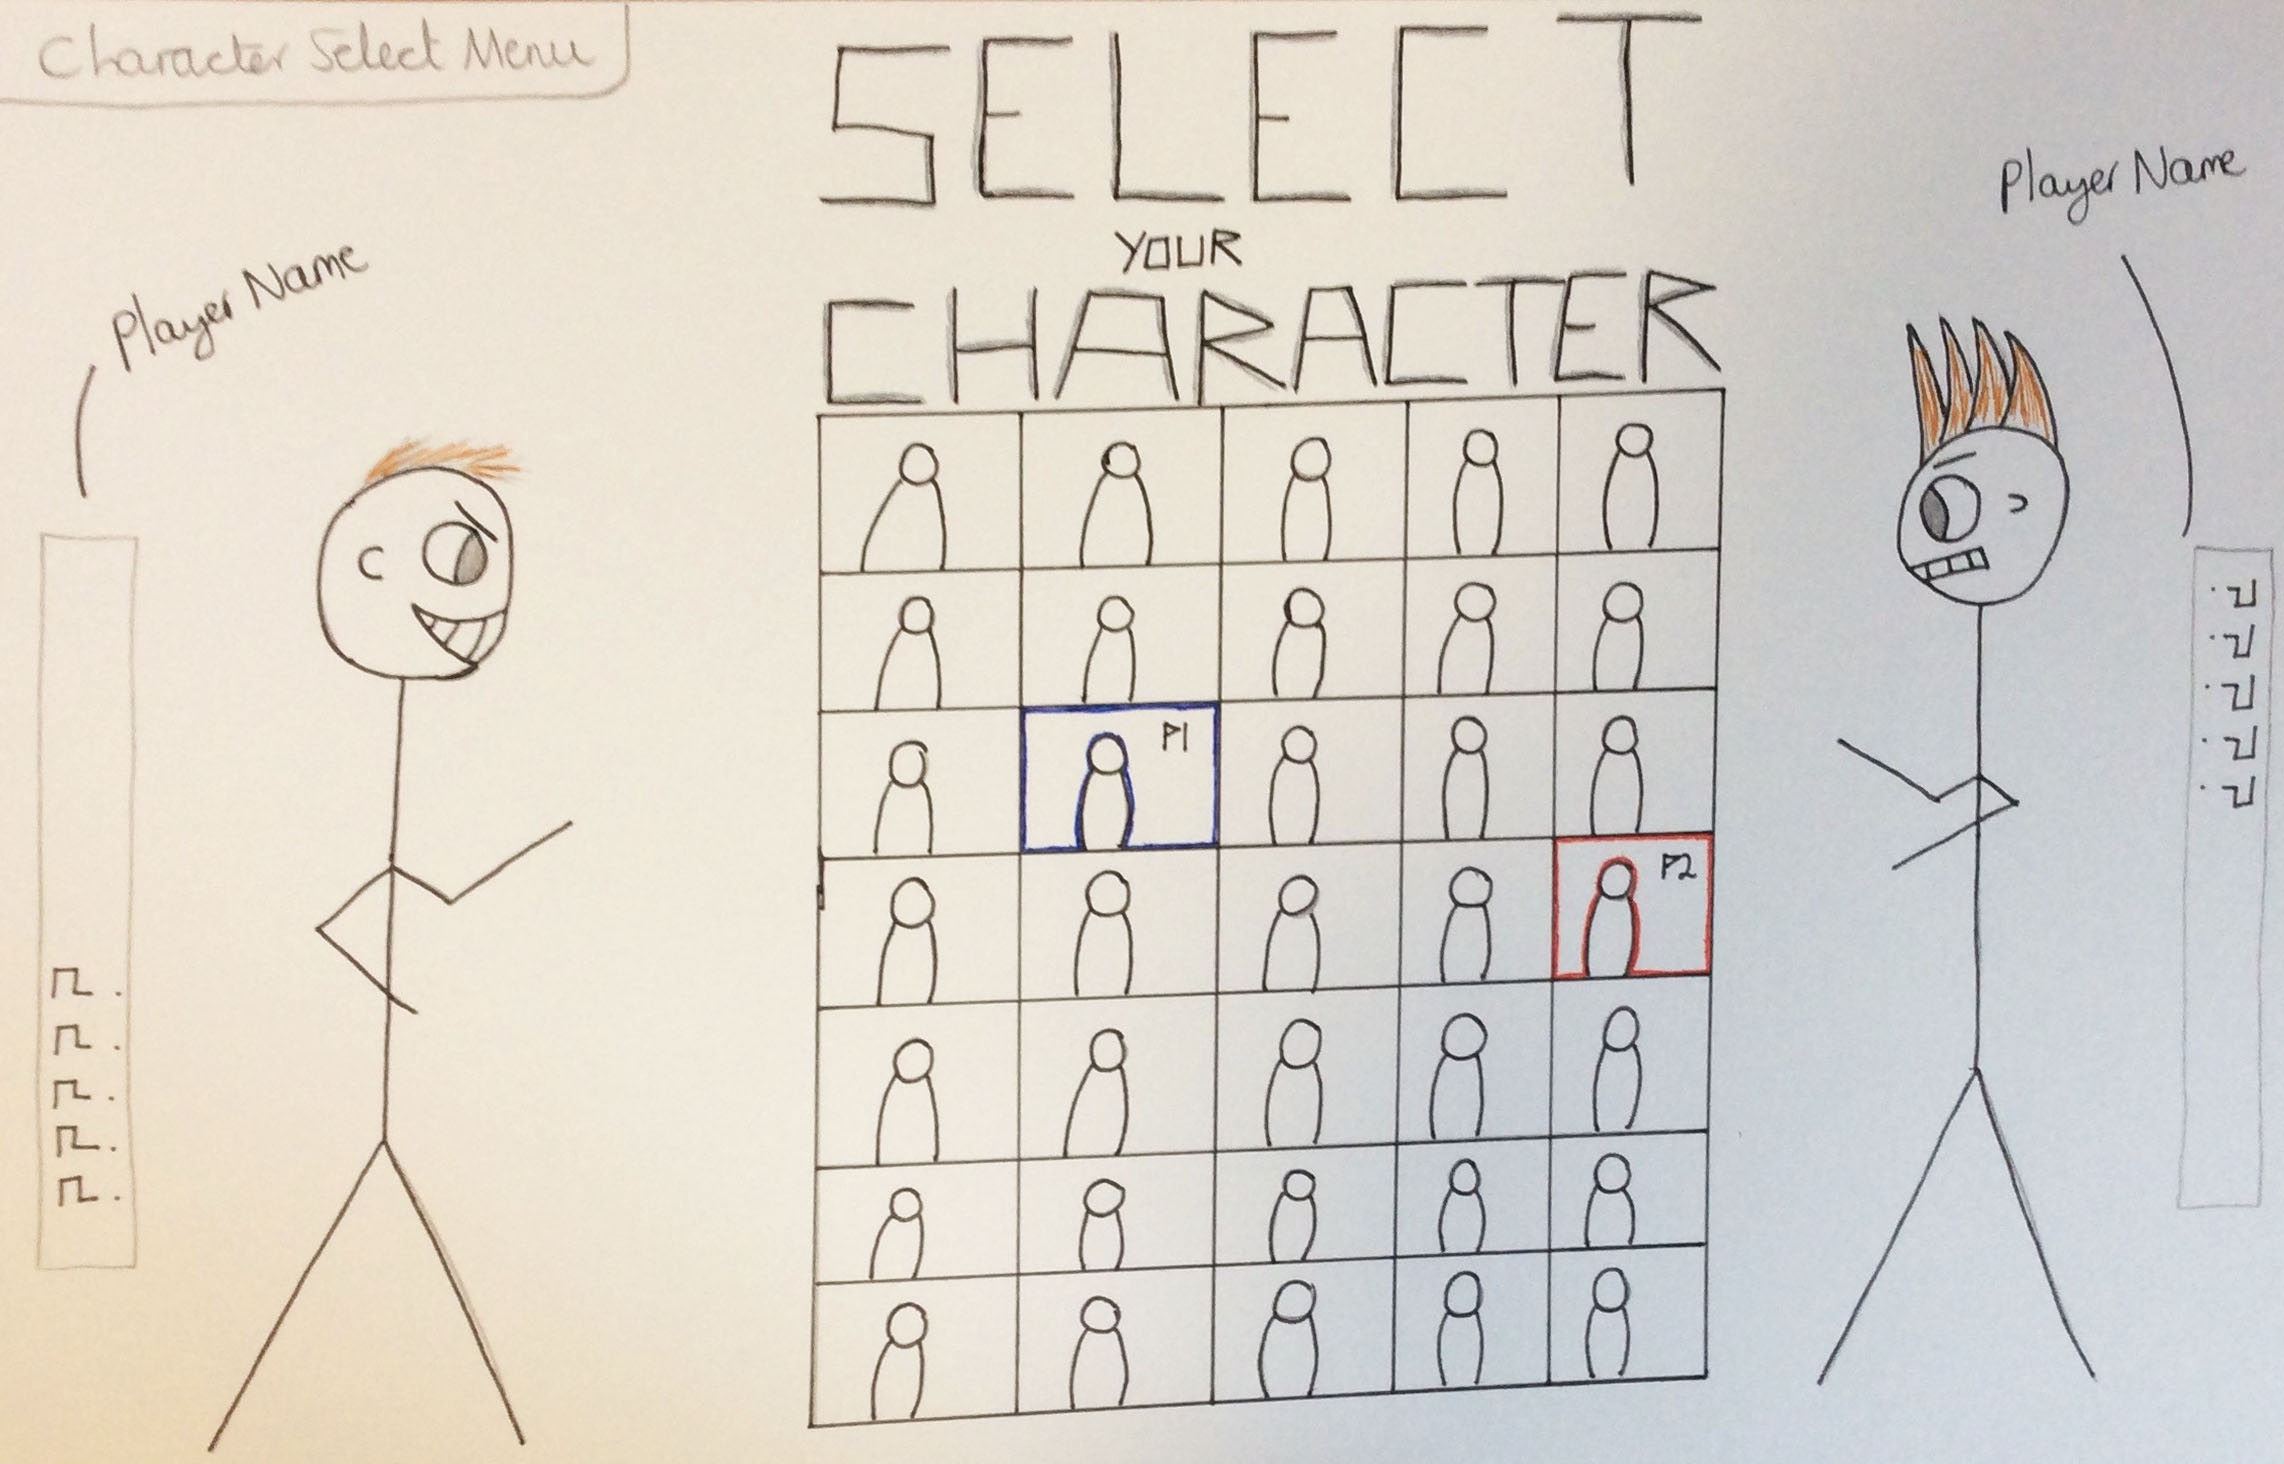 The Third Created Design for the Character Select Menu